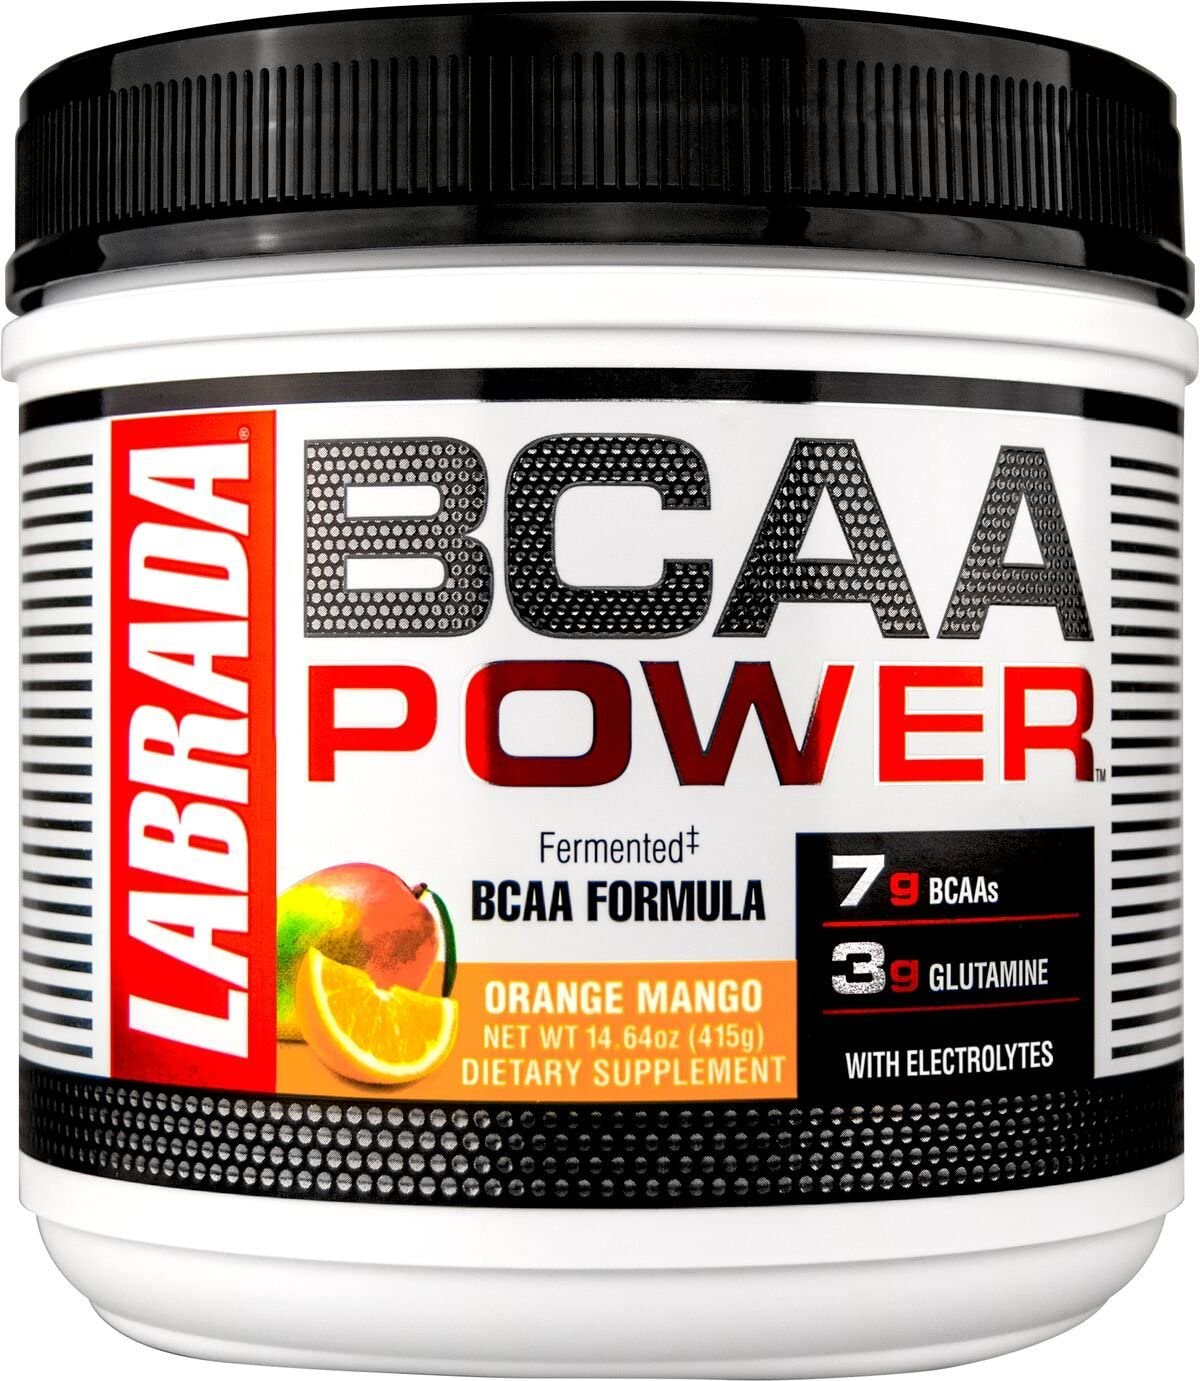 LABRADA NUTRITION BCAA Power Powder, Fermented Amino Acids with Glutamine Electrolytes, Muscle Building Post Workout Supplement, Orange Mango, 30sv